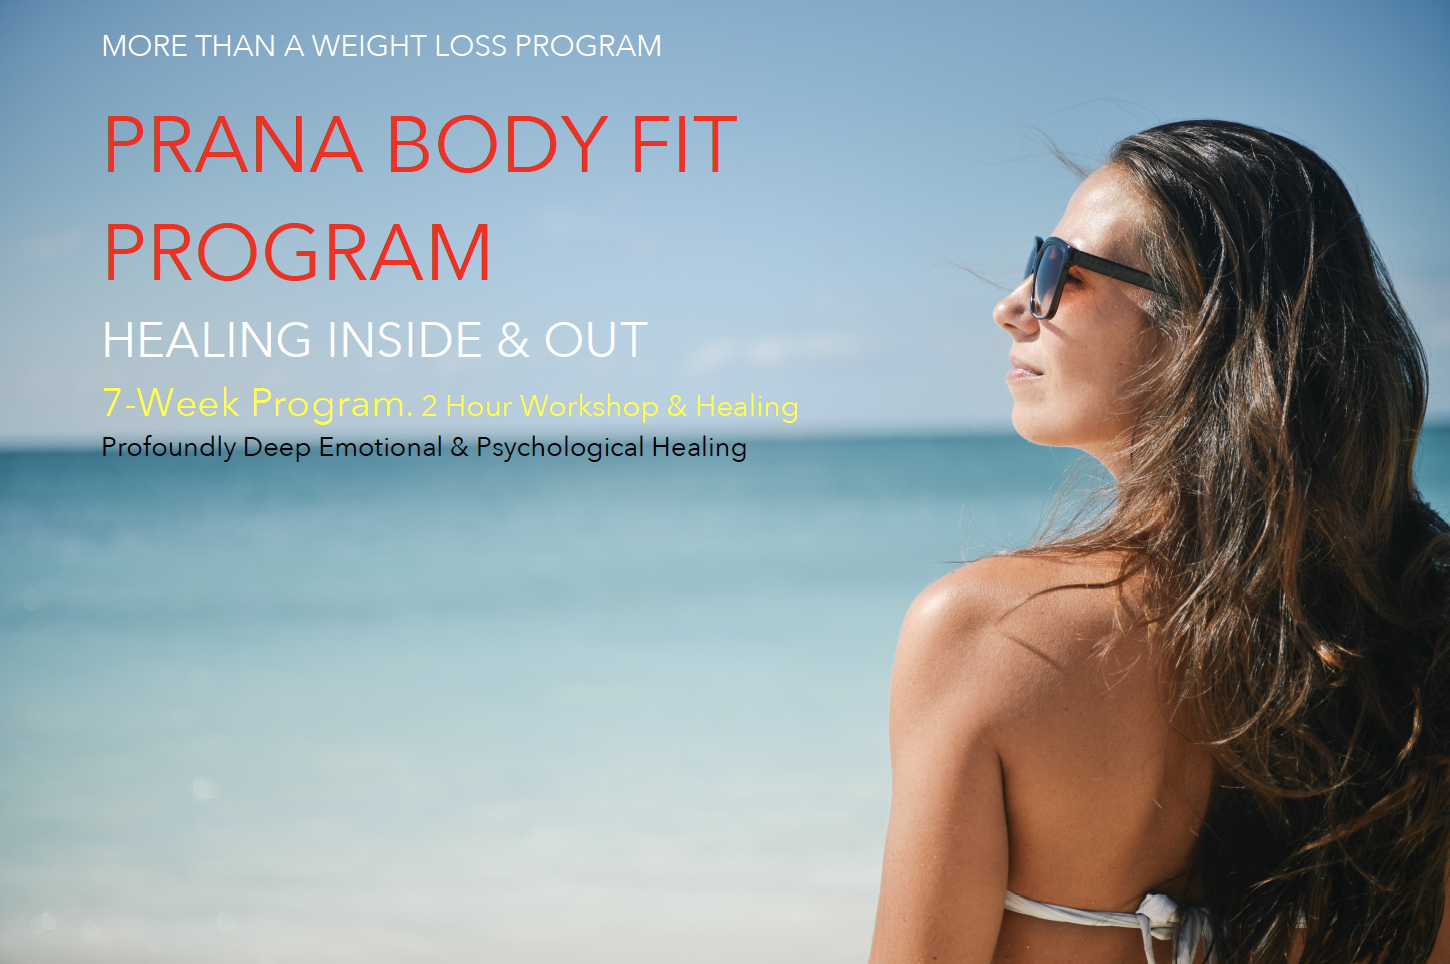 "The Prana Body Fit (PBF)  Program is a beautiful way to understand oneself in a deeper and loving way to bring more joy and healthy way of life, physically, emotionally and mentally. Many have even lost pounds and inches (if that was their goal ^__^)... It's been an amazing journey and is a highly demanded Program. Hope you can join us! Go to  www.ATLPranicHealing.com/pranabodyfit  to join or for more information!  Please feel free to share this with anyone who may be interested.    7-Session Workshop.   See schedule.  In-person & online sessions available.   A Beautiful Offering:    Lectures  - Learning about self and energetic tools to help improve wellbeing  "" Work""shop  - Diving deeper into the self to see areas of strengths, patterns, past trauma, positive experiences to help translate and re-wire patterns   Guided Healing  - Facilitating healings of physical, emotional and mental areas that may have been blocking oneself for a healthier lifestyle.   Group Support  - Bringing a circle of support for/from the group as it leverages exponential ways for self-growth.  We also offer individual Pranic Body Sculpting sessions, if you purchase the  Golden PBF Bundle.  Pranic Body Sculpting helps increase vitality and healing into our skin, muscles and help remove stress and depression energies in the body. It is an amazing way to help shed pounds or inches. See below for pricing.  Judy Yi, Founder of Atlanta Pranic Healing Center, facilitates the group workshop. In the past, each PBF series has been such sacred space for healing, where people practice deeper honoring of self and others. Many have shed pounds and inches. Many have built strength and confidence. Many have experienced deeper connection to self and others. And most of all, many have shed negative emotions, stress, and deep-seeded patterns that hindered for great success and wellbeing.  A portion of the funds help support the center's rent and other programs."